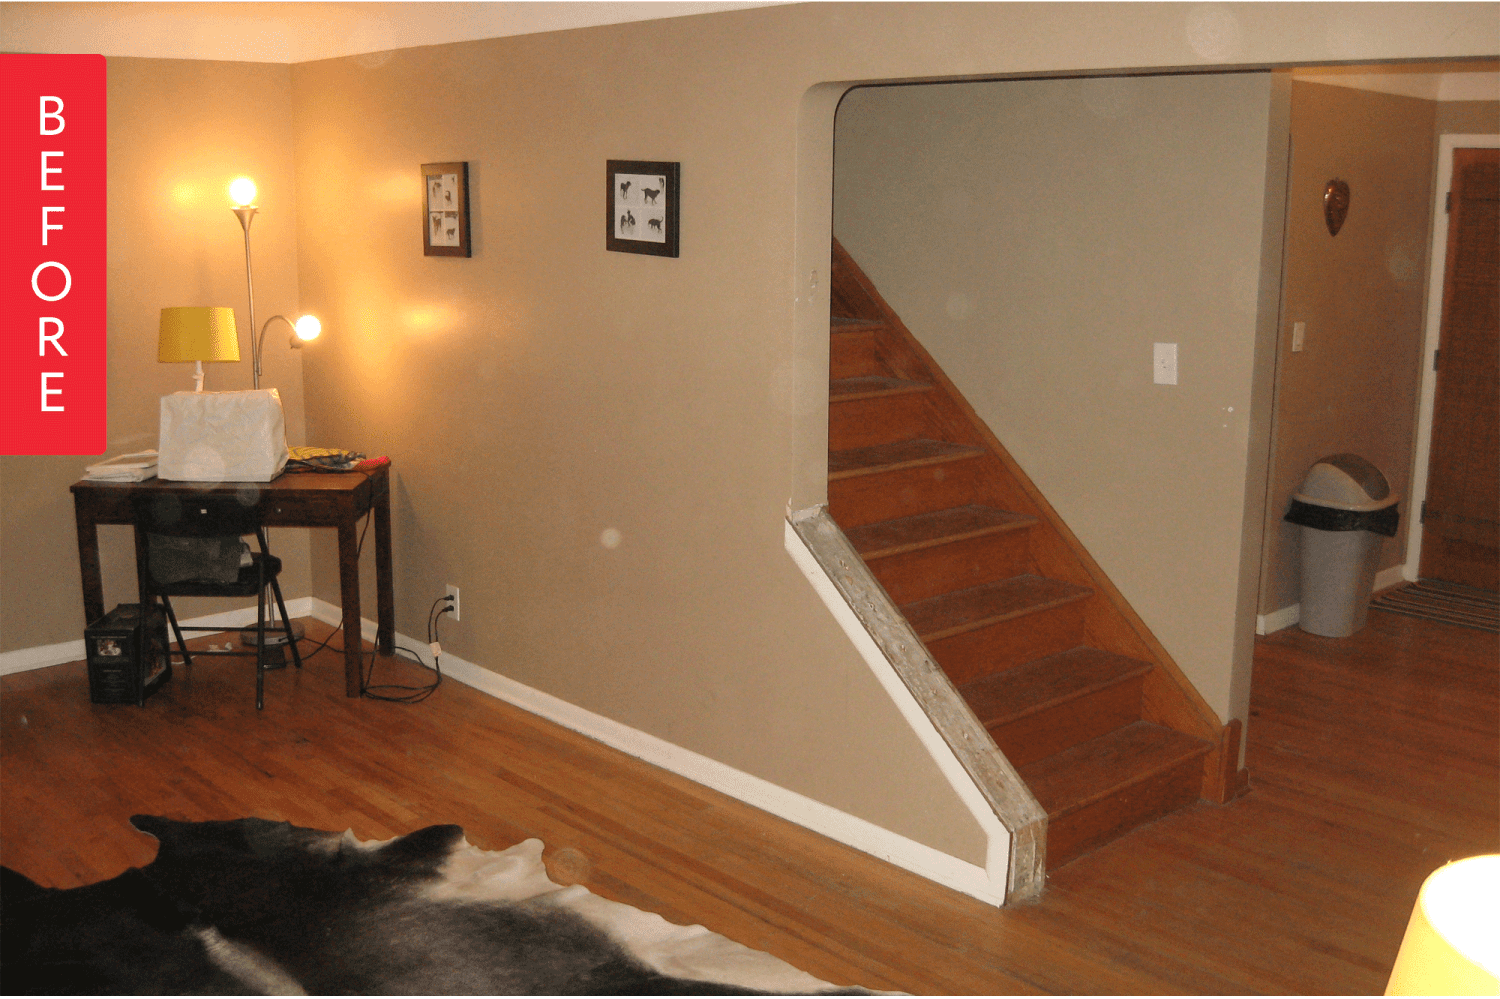 Before and After: An Almost Unrecognizable Modern Transformation of a Beige Suburban House